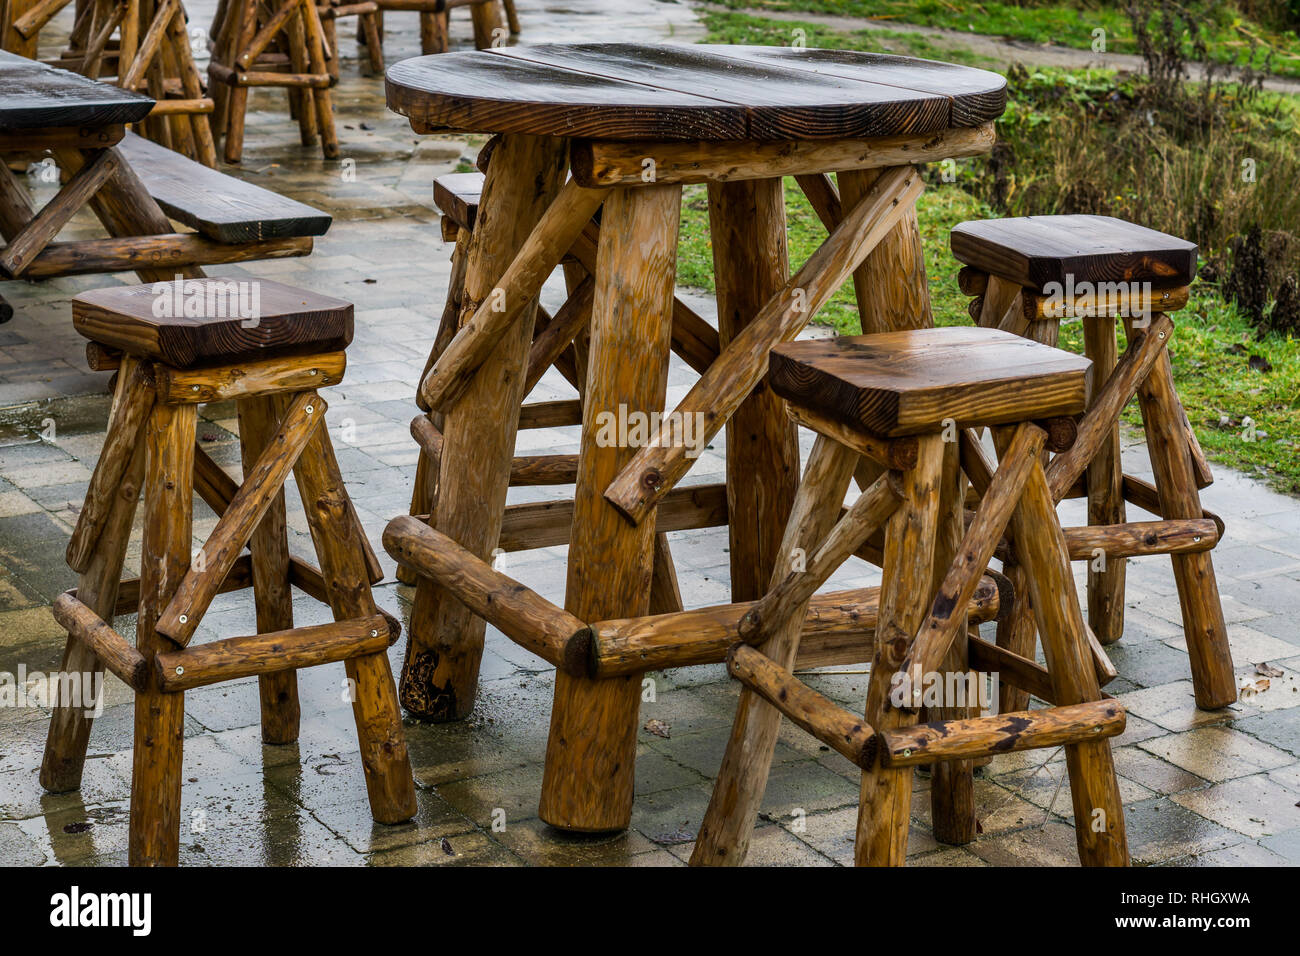 empty wooden table with bar crutches, garden or terrace furniture, rainy day in the catering industry - Stock Image